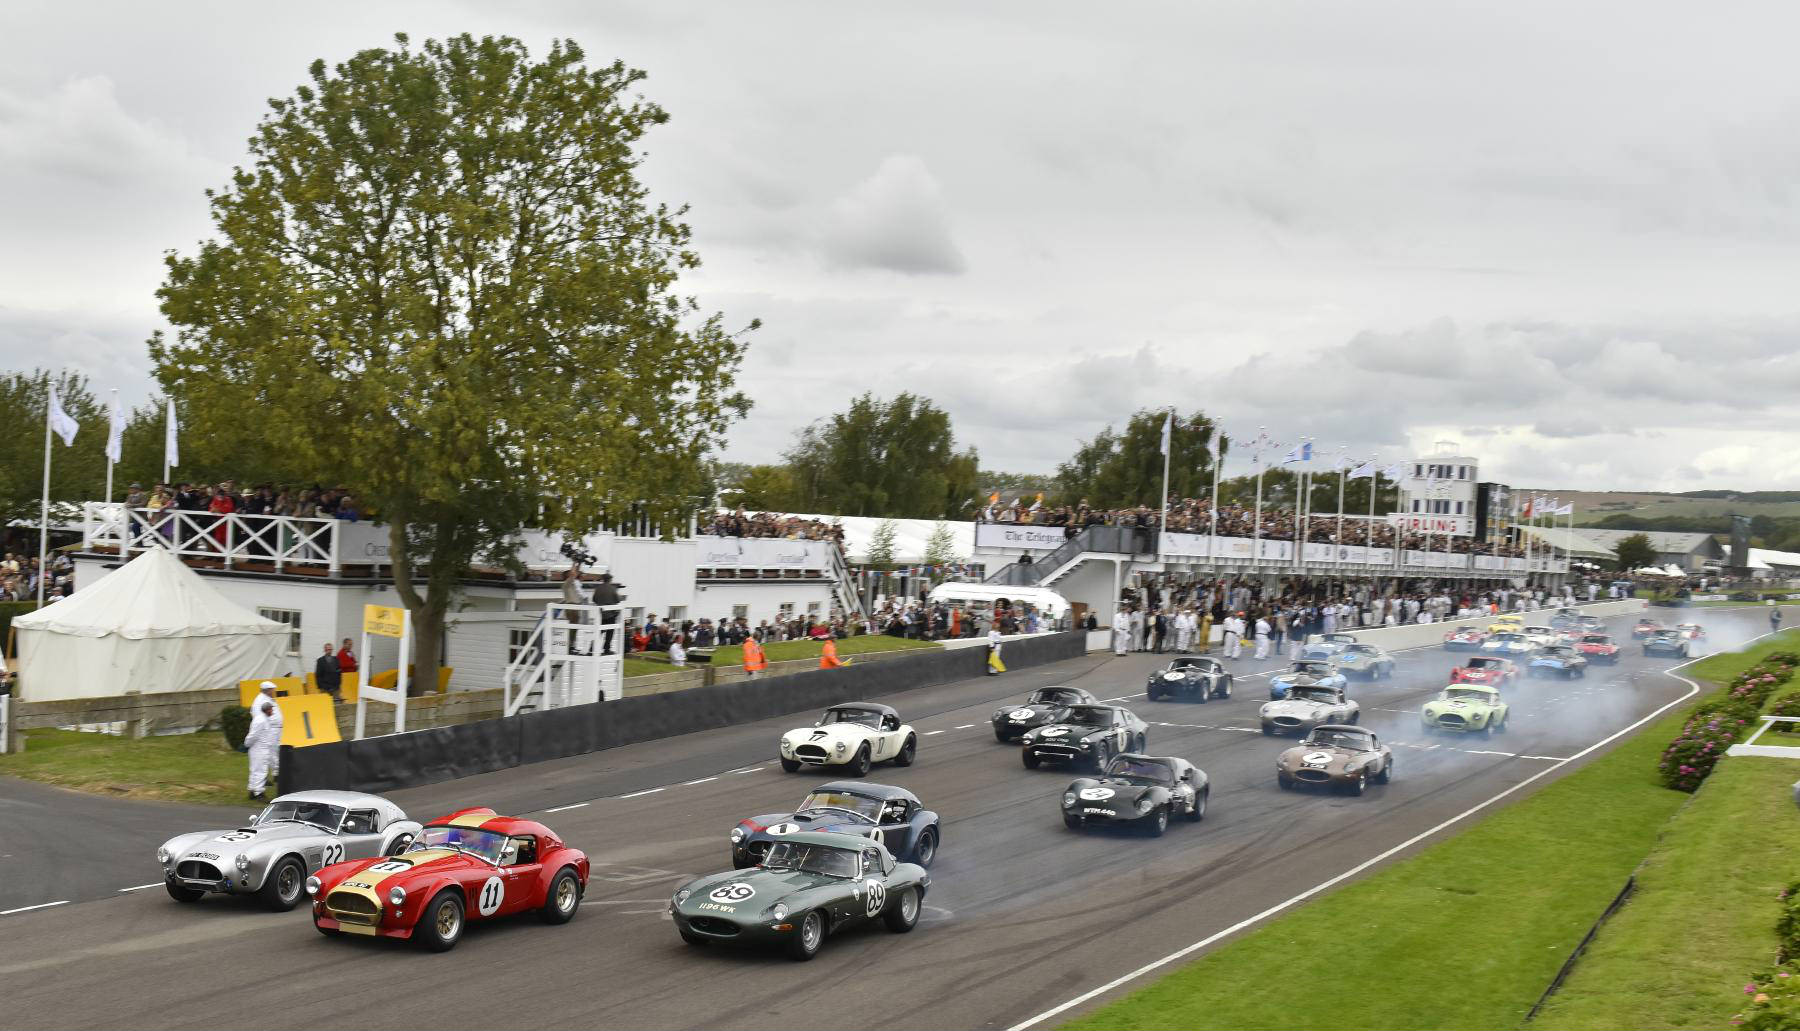 image of vintage cars racing at goodward revival festival 2017